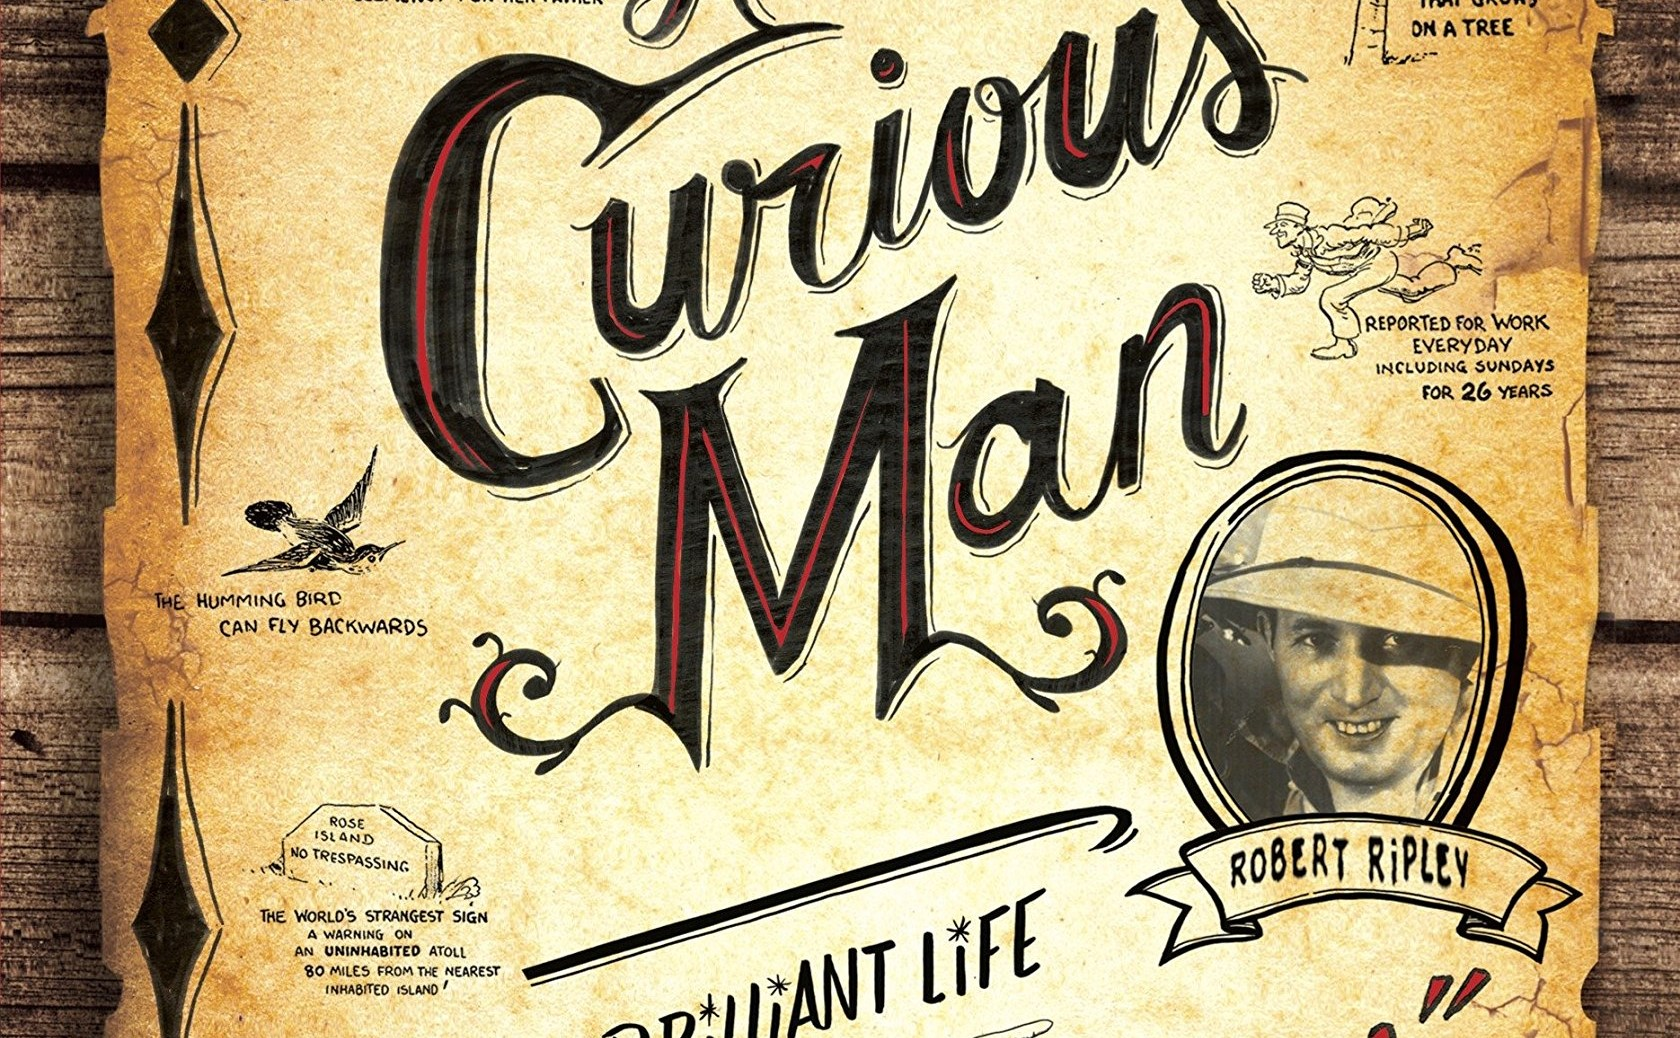 A Curious Man: The Strange and Brilliant Life of Robert Ripley